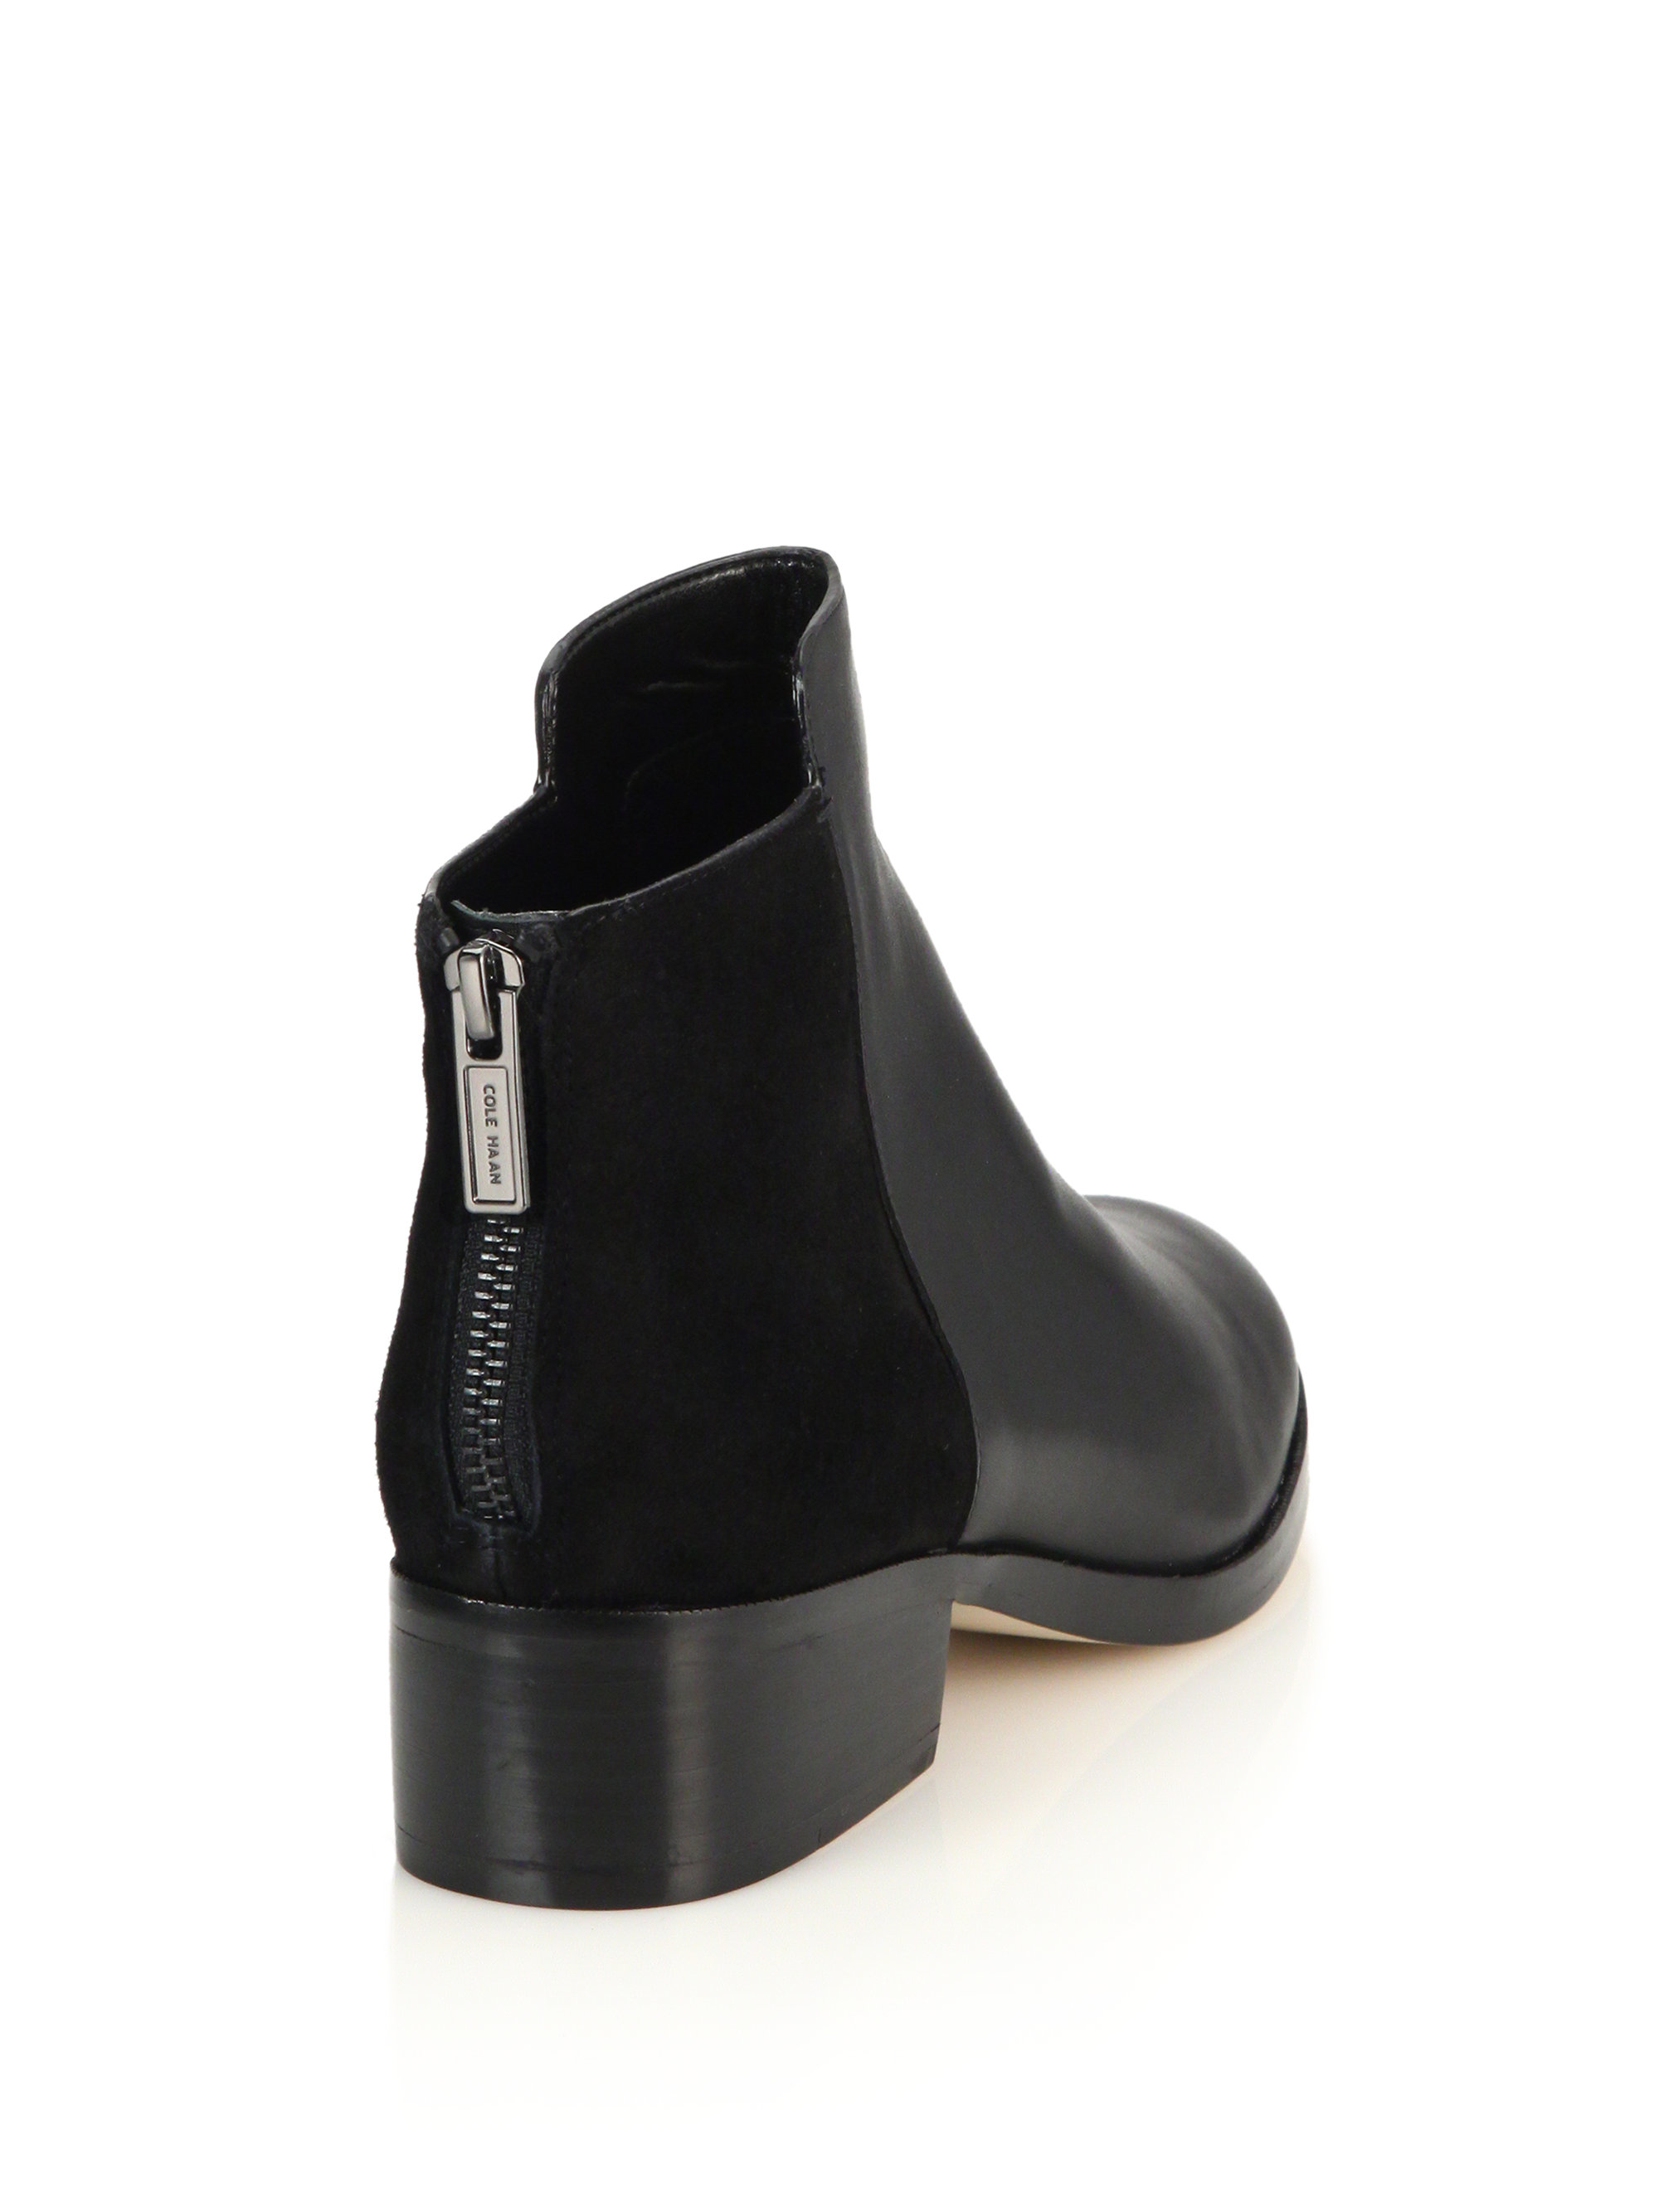 Cole haan Elion Leather & Suede Ankle Boots in Black | Lyst